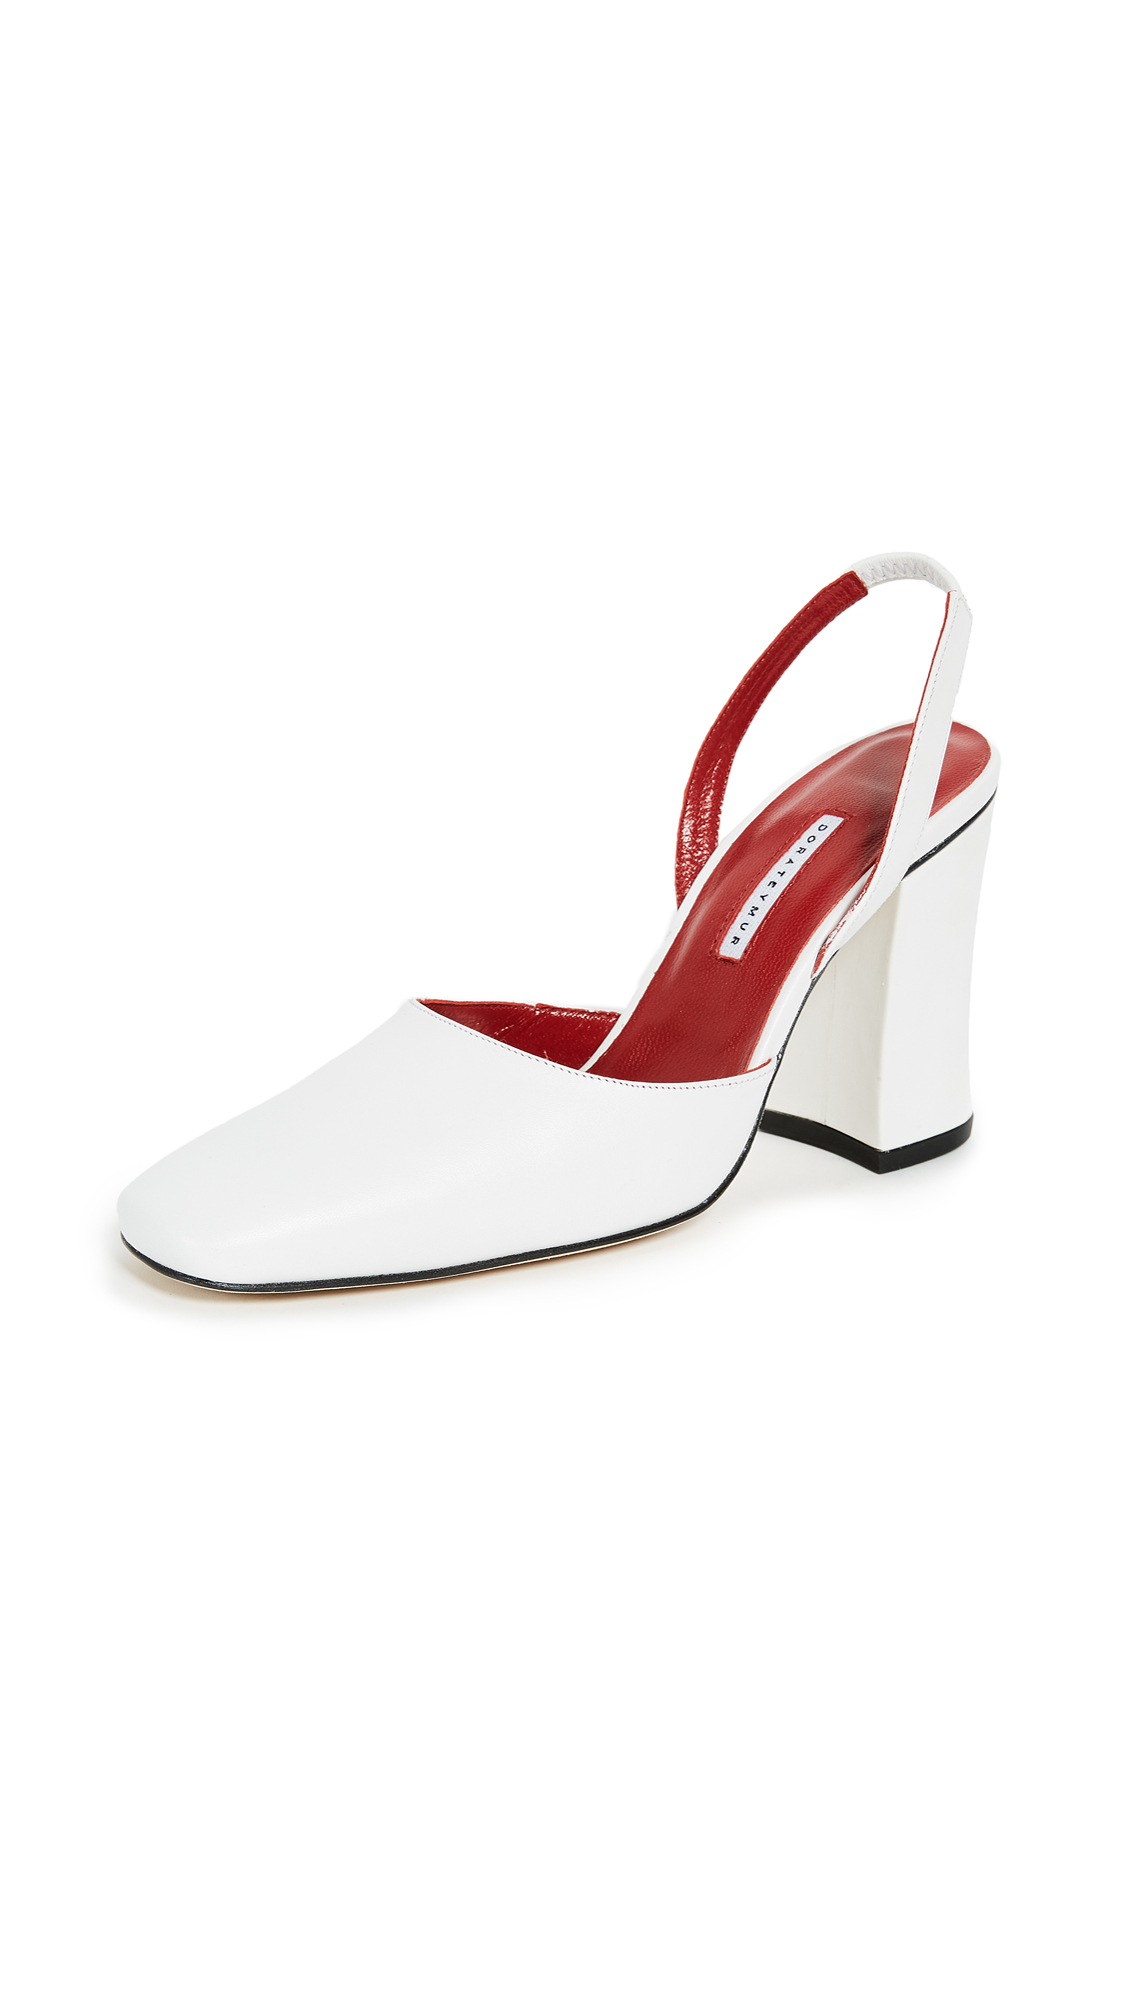 Dorateymur Resort Sling Pumps - White